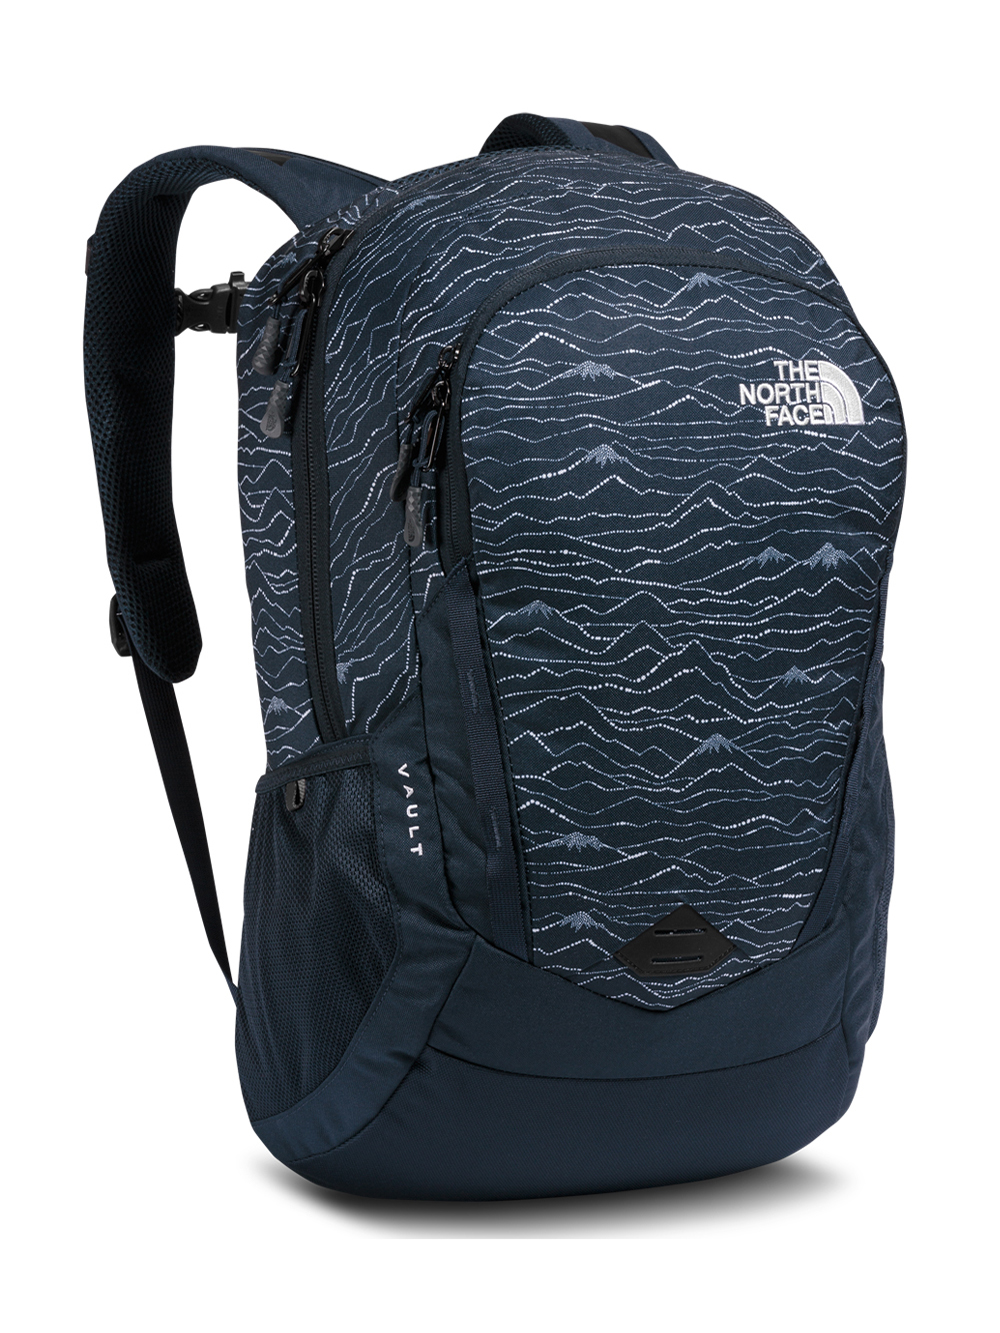 The North Face Jester Backpack - urban navy lineland print/urban navy, one size